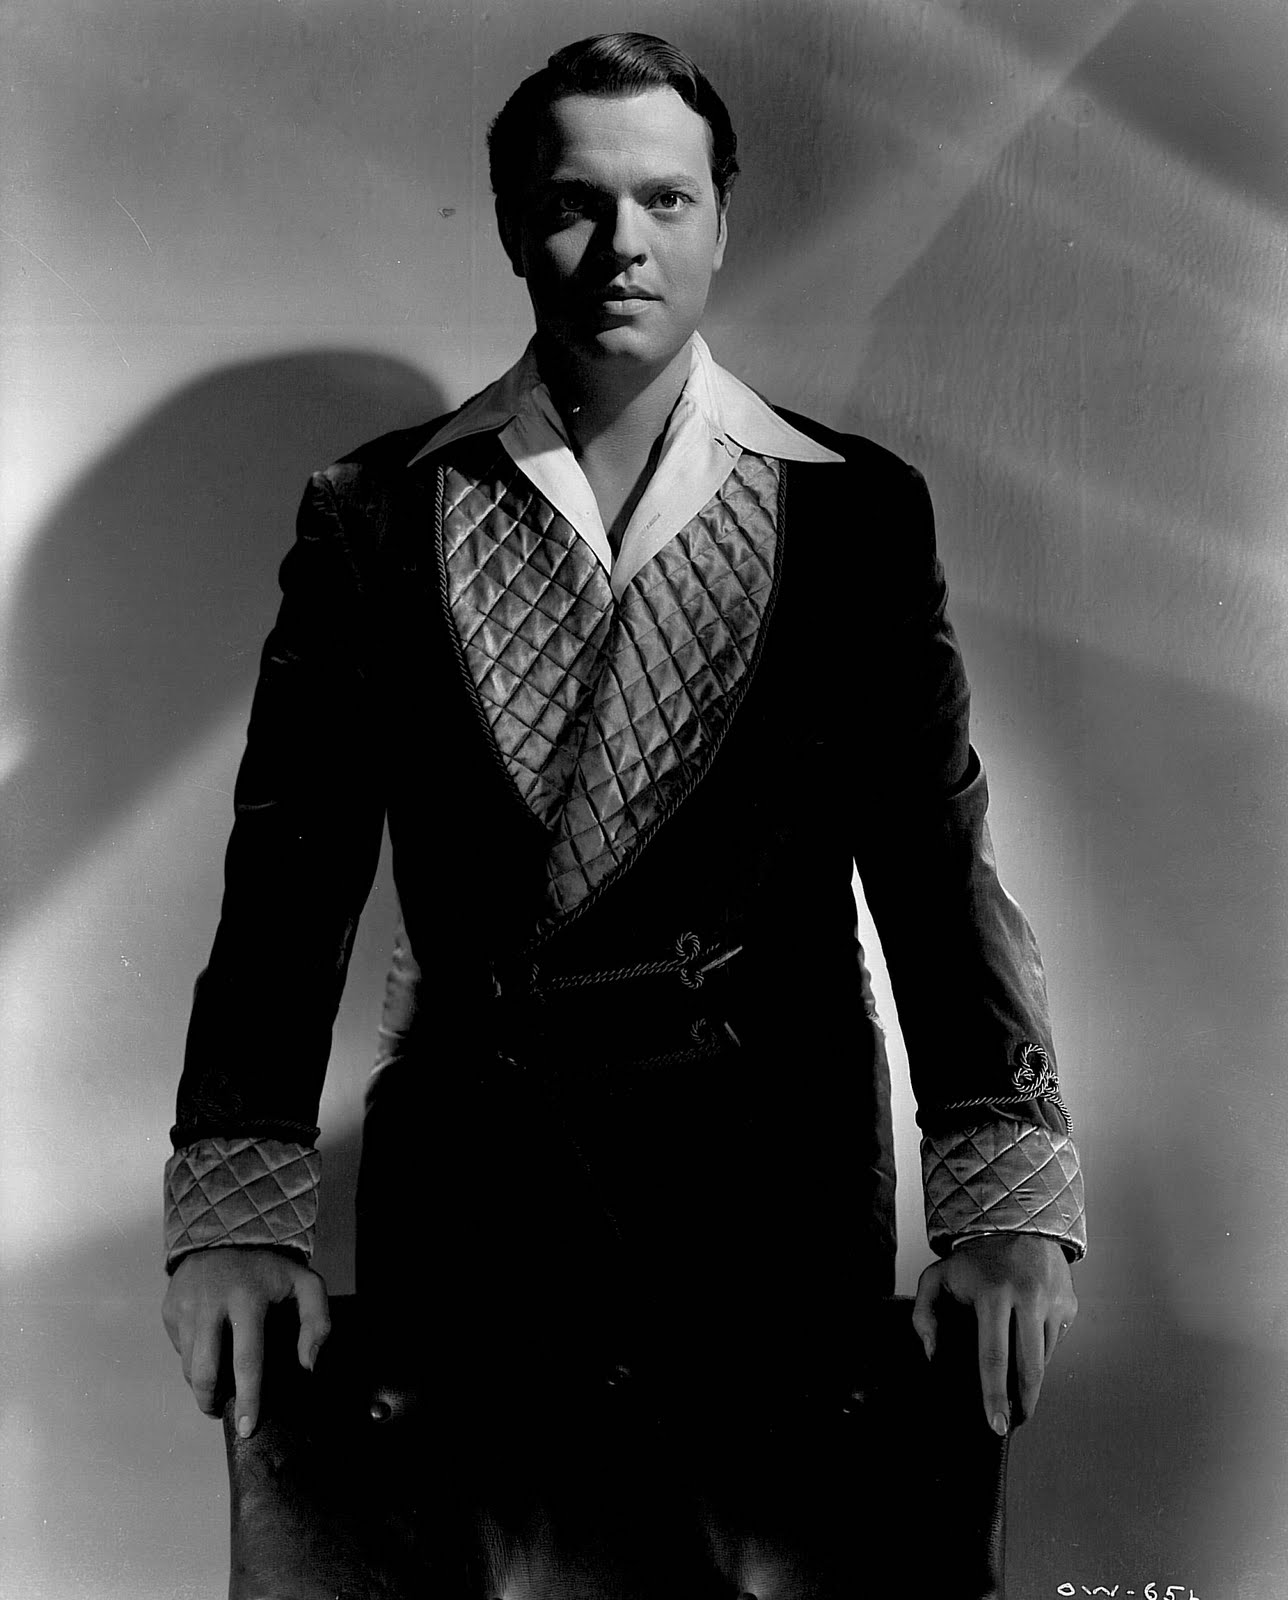 Orson Welles For mobile